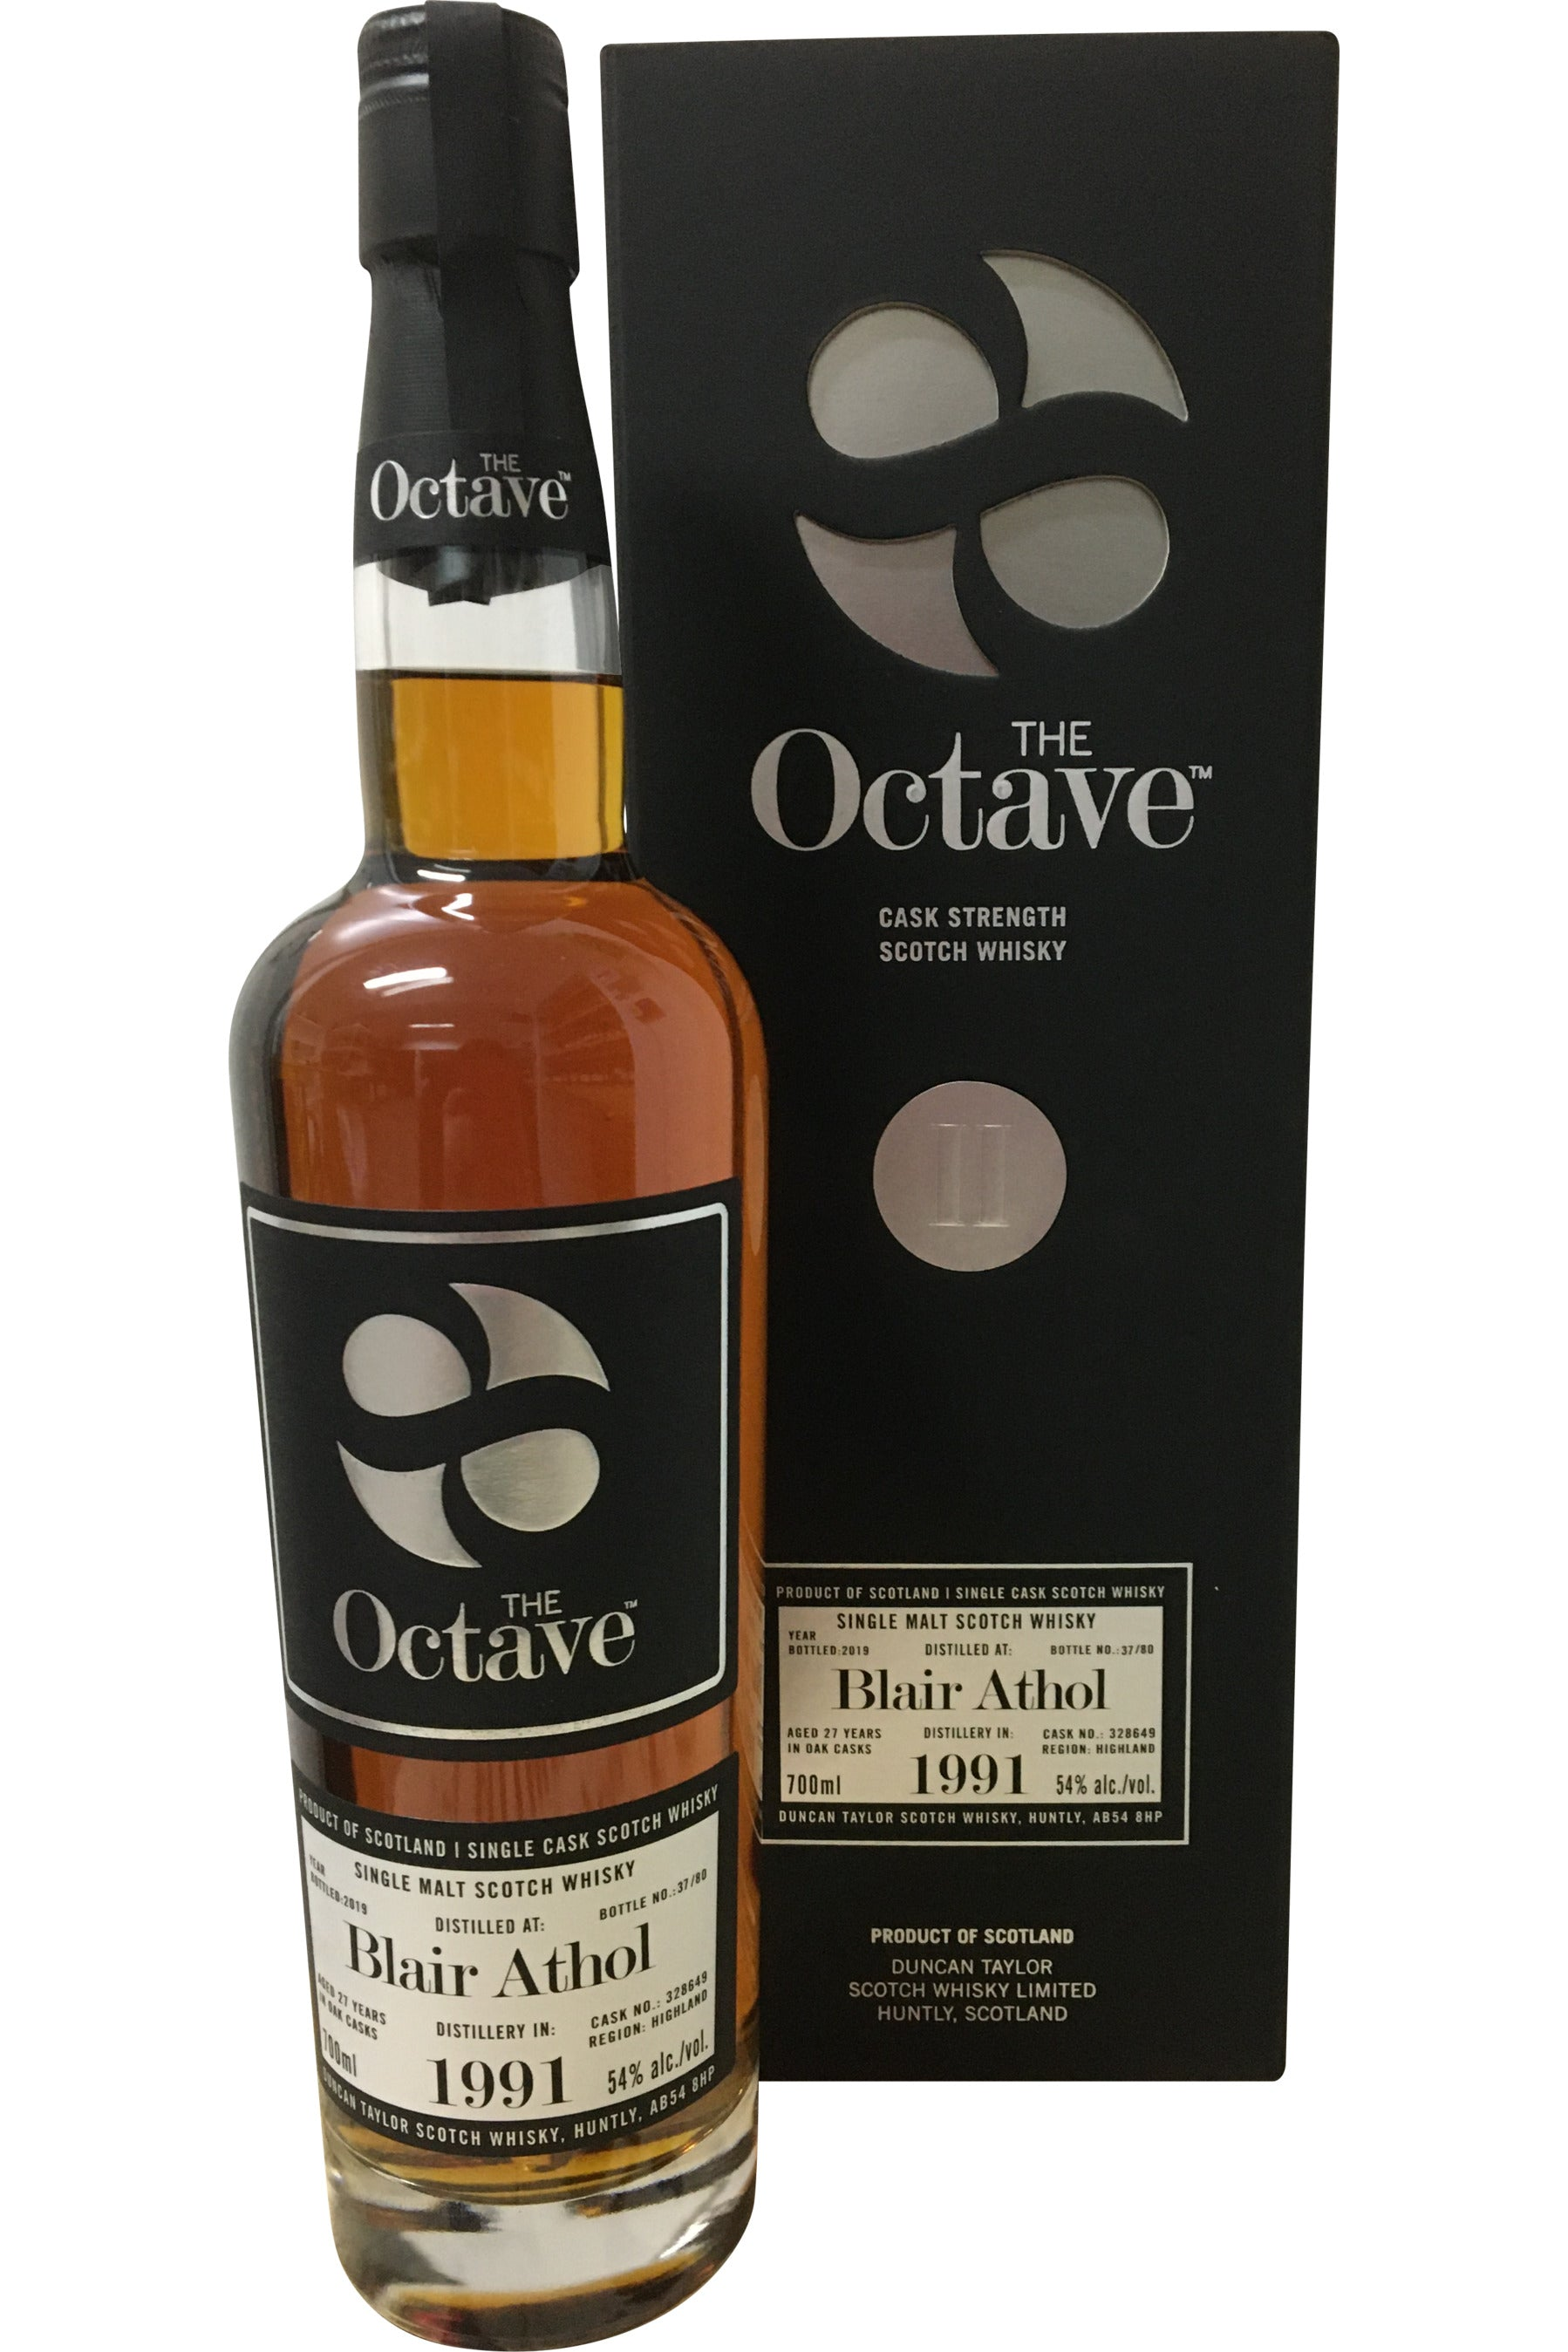 The Octave Premium Blair Athol 1991 27 Year Old #328649 Whisky - 54% 700ml